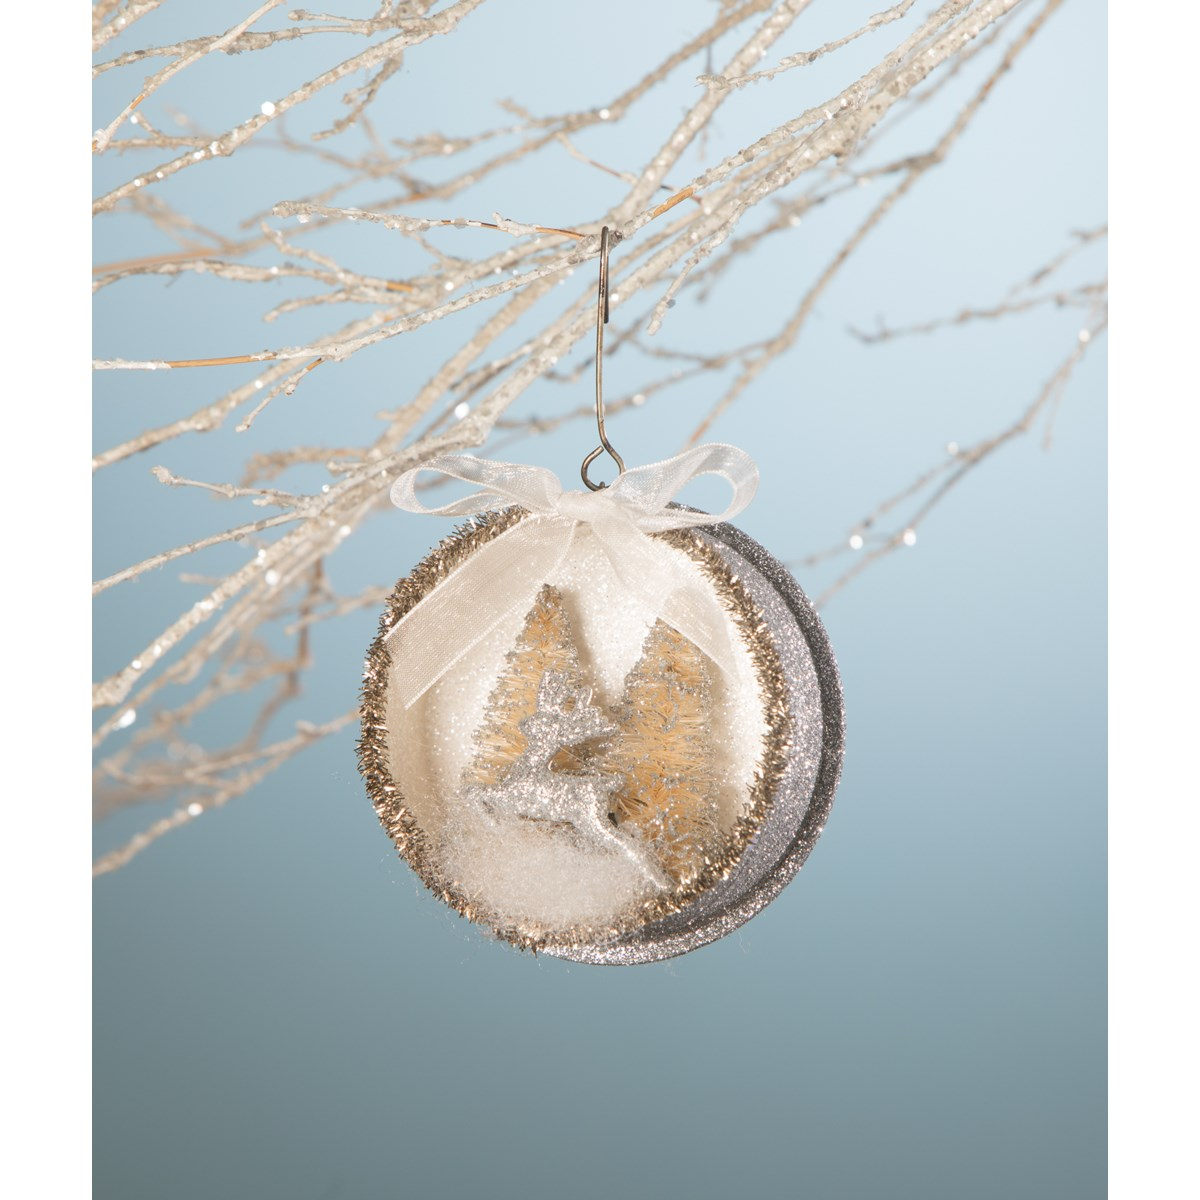 Platinum Leaping Stag Indent Ornament